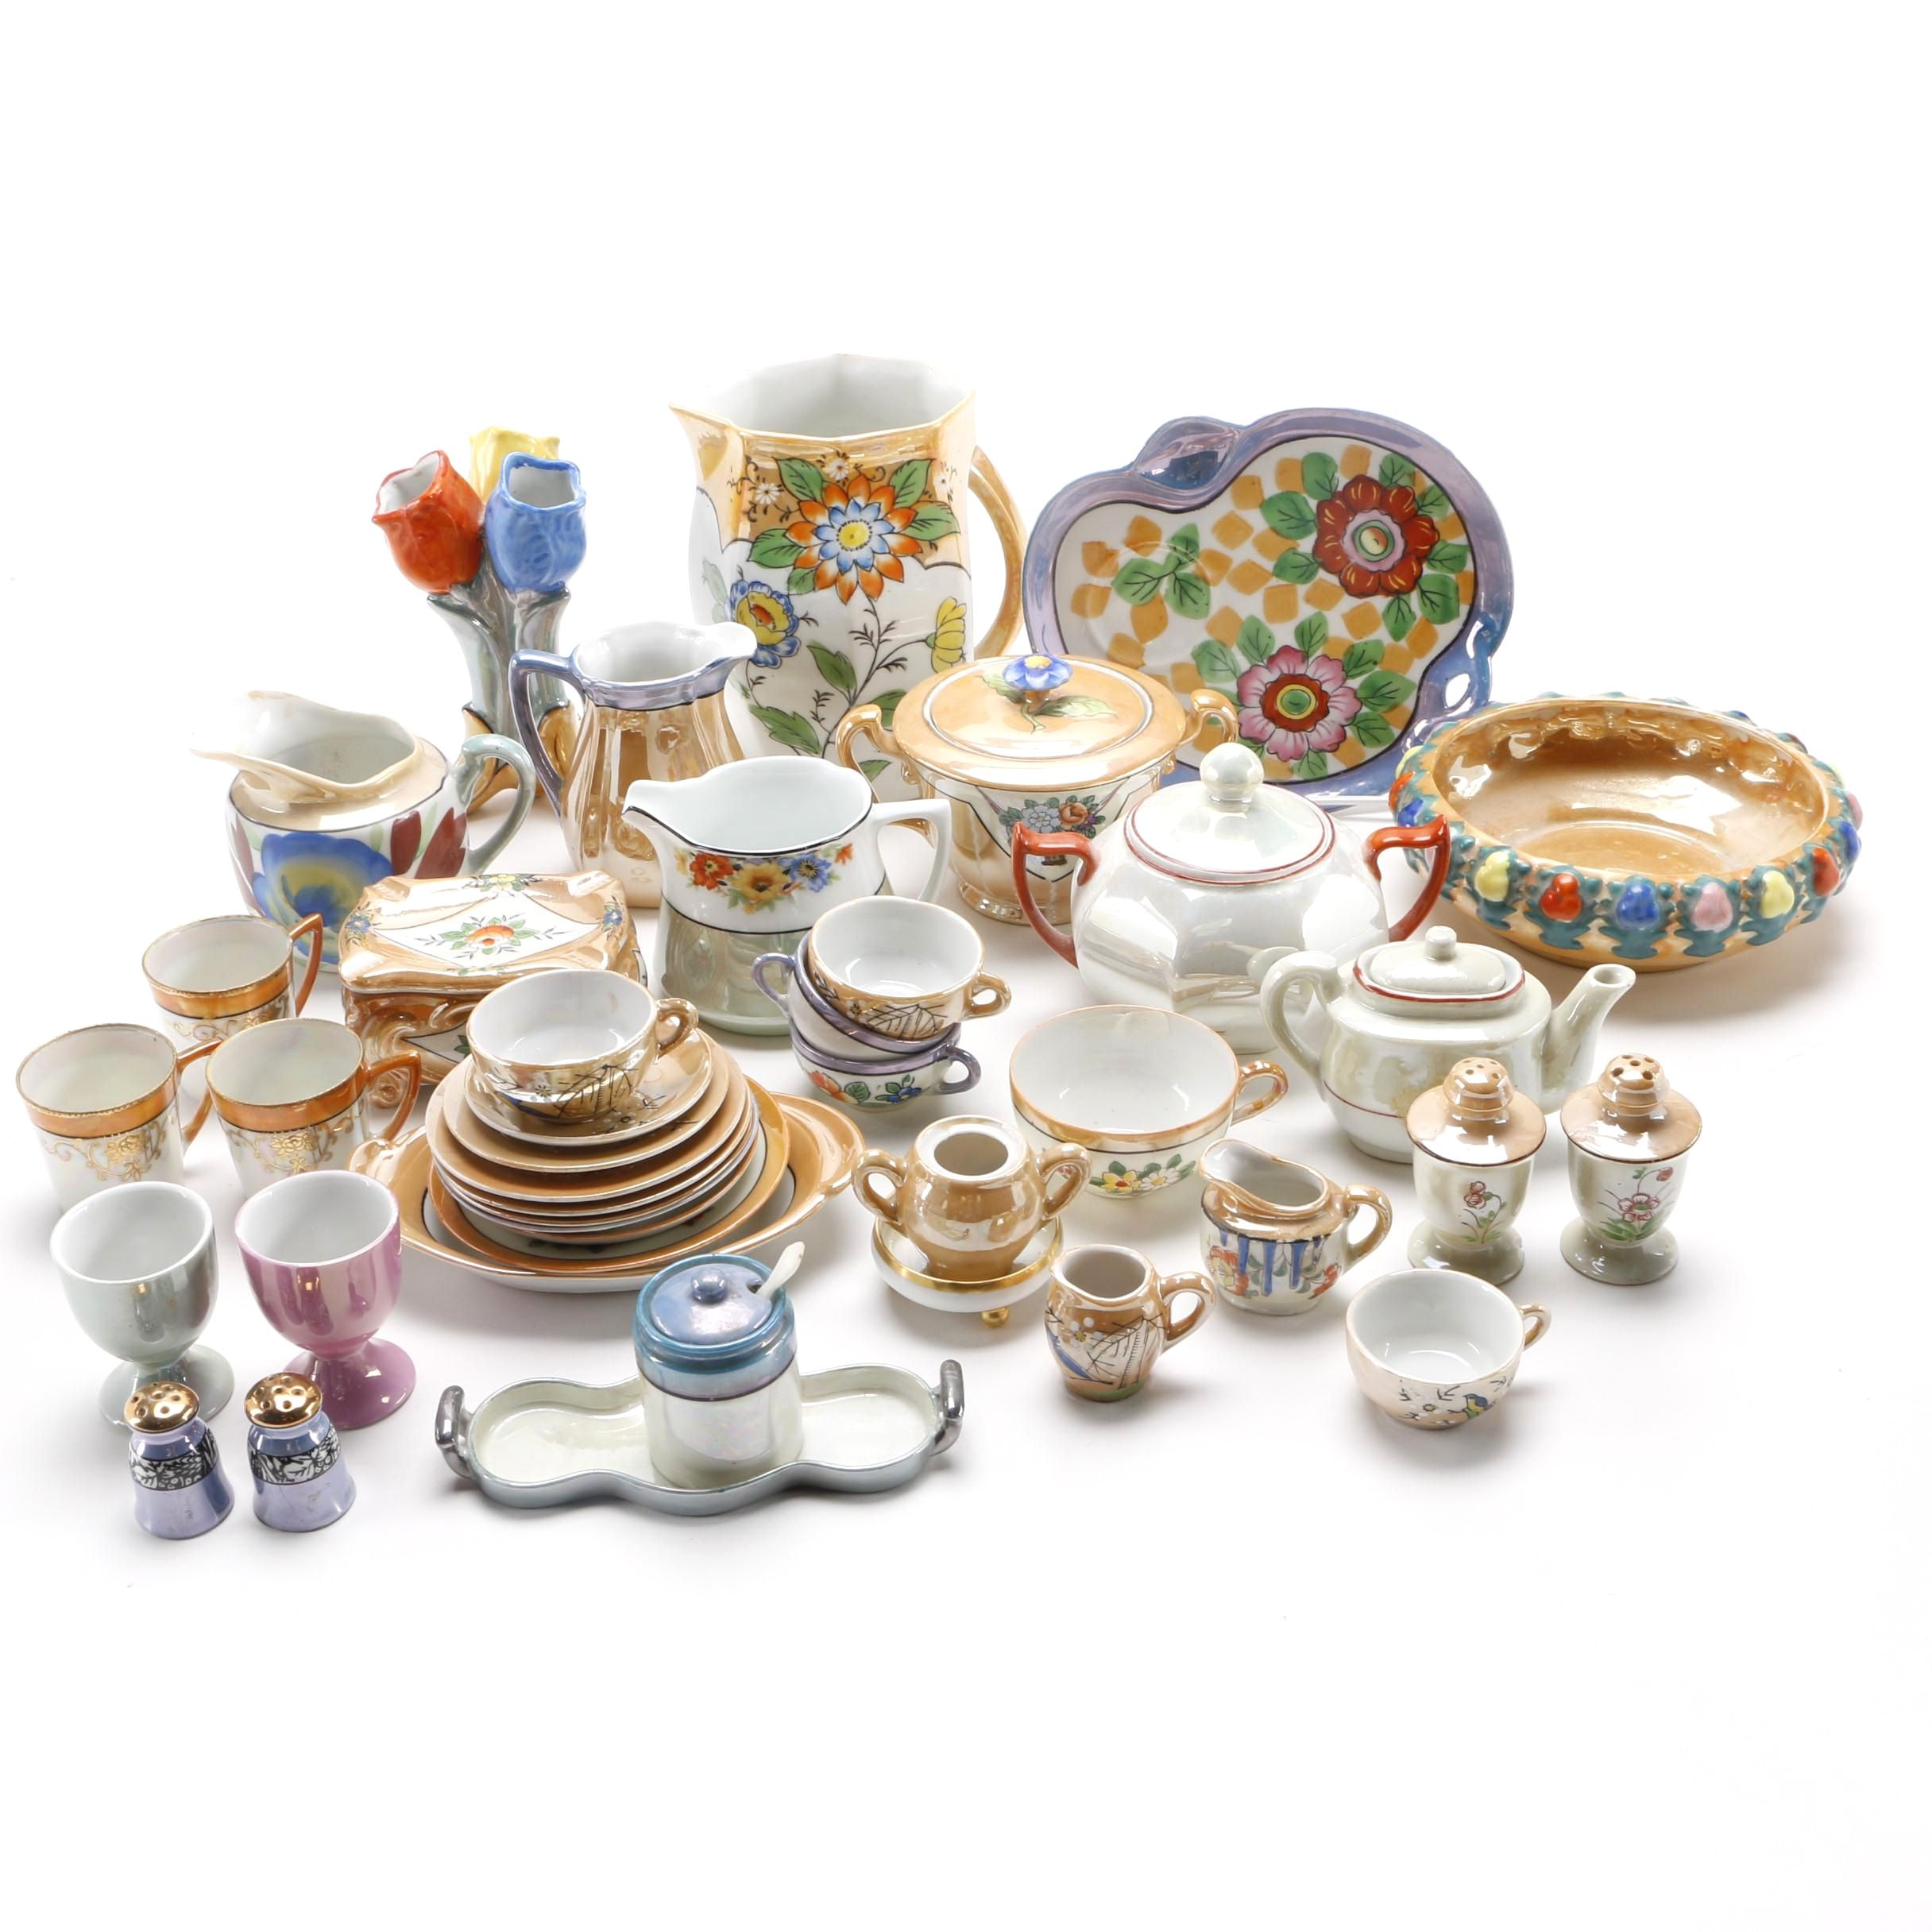 Large Assortment of Lusterware Dishes